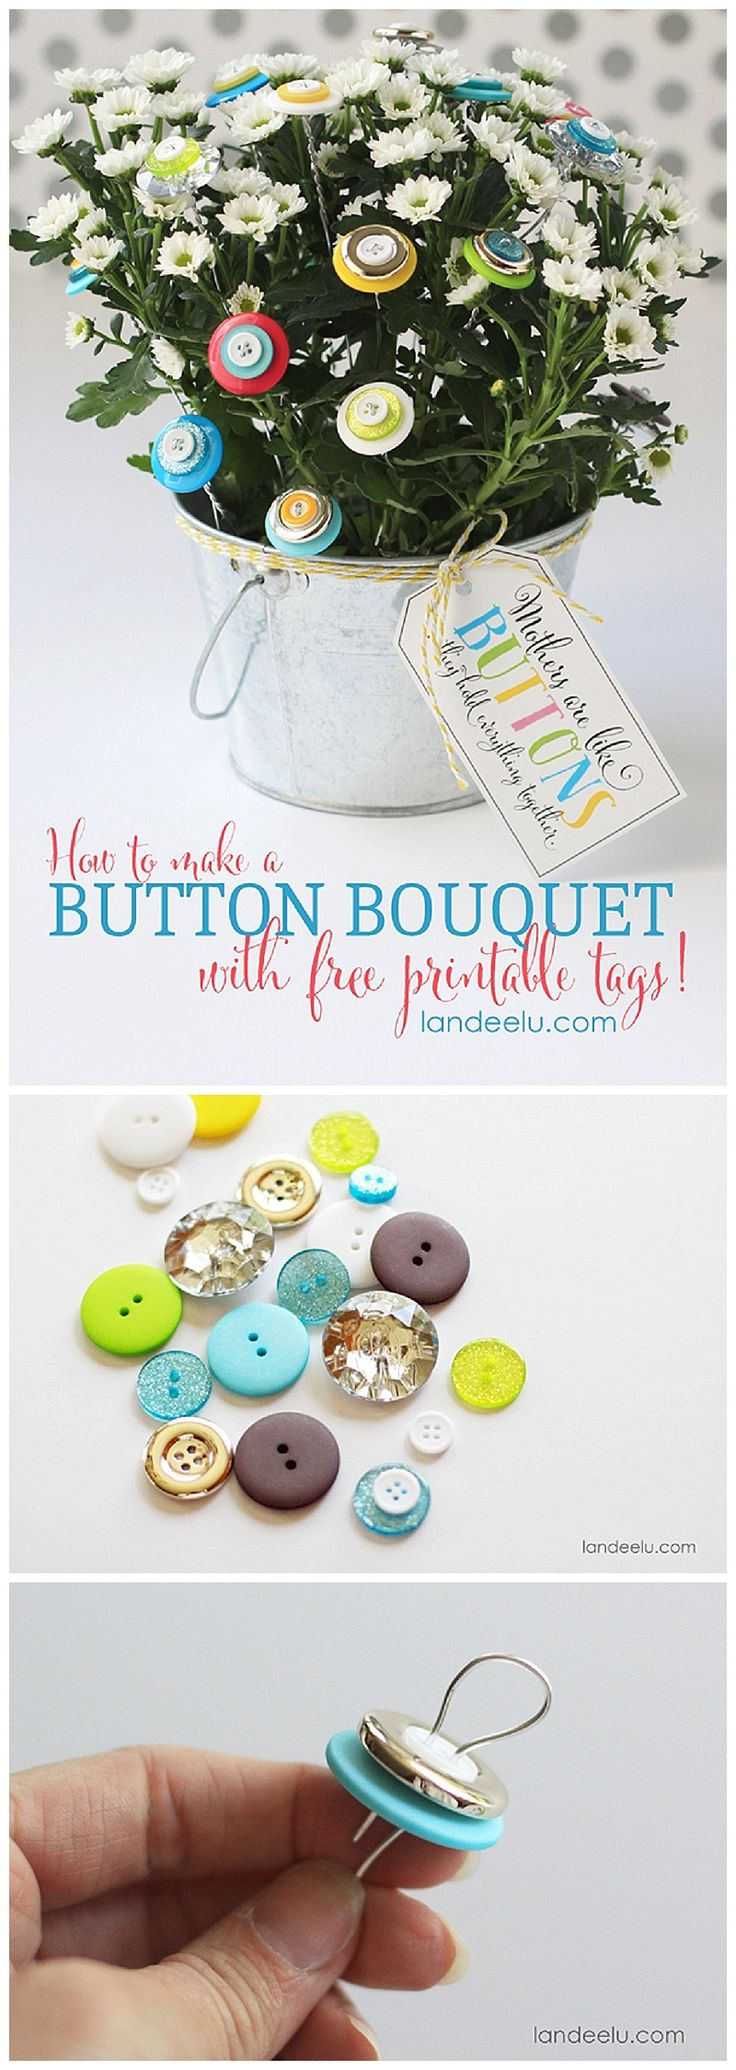 best bottoni botton images on pinterest button button button